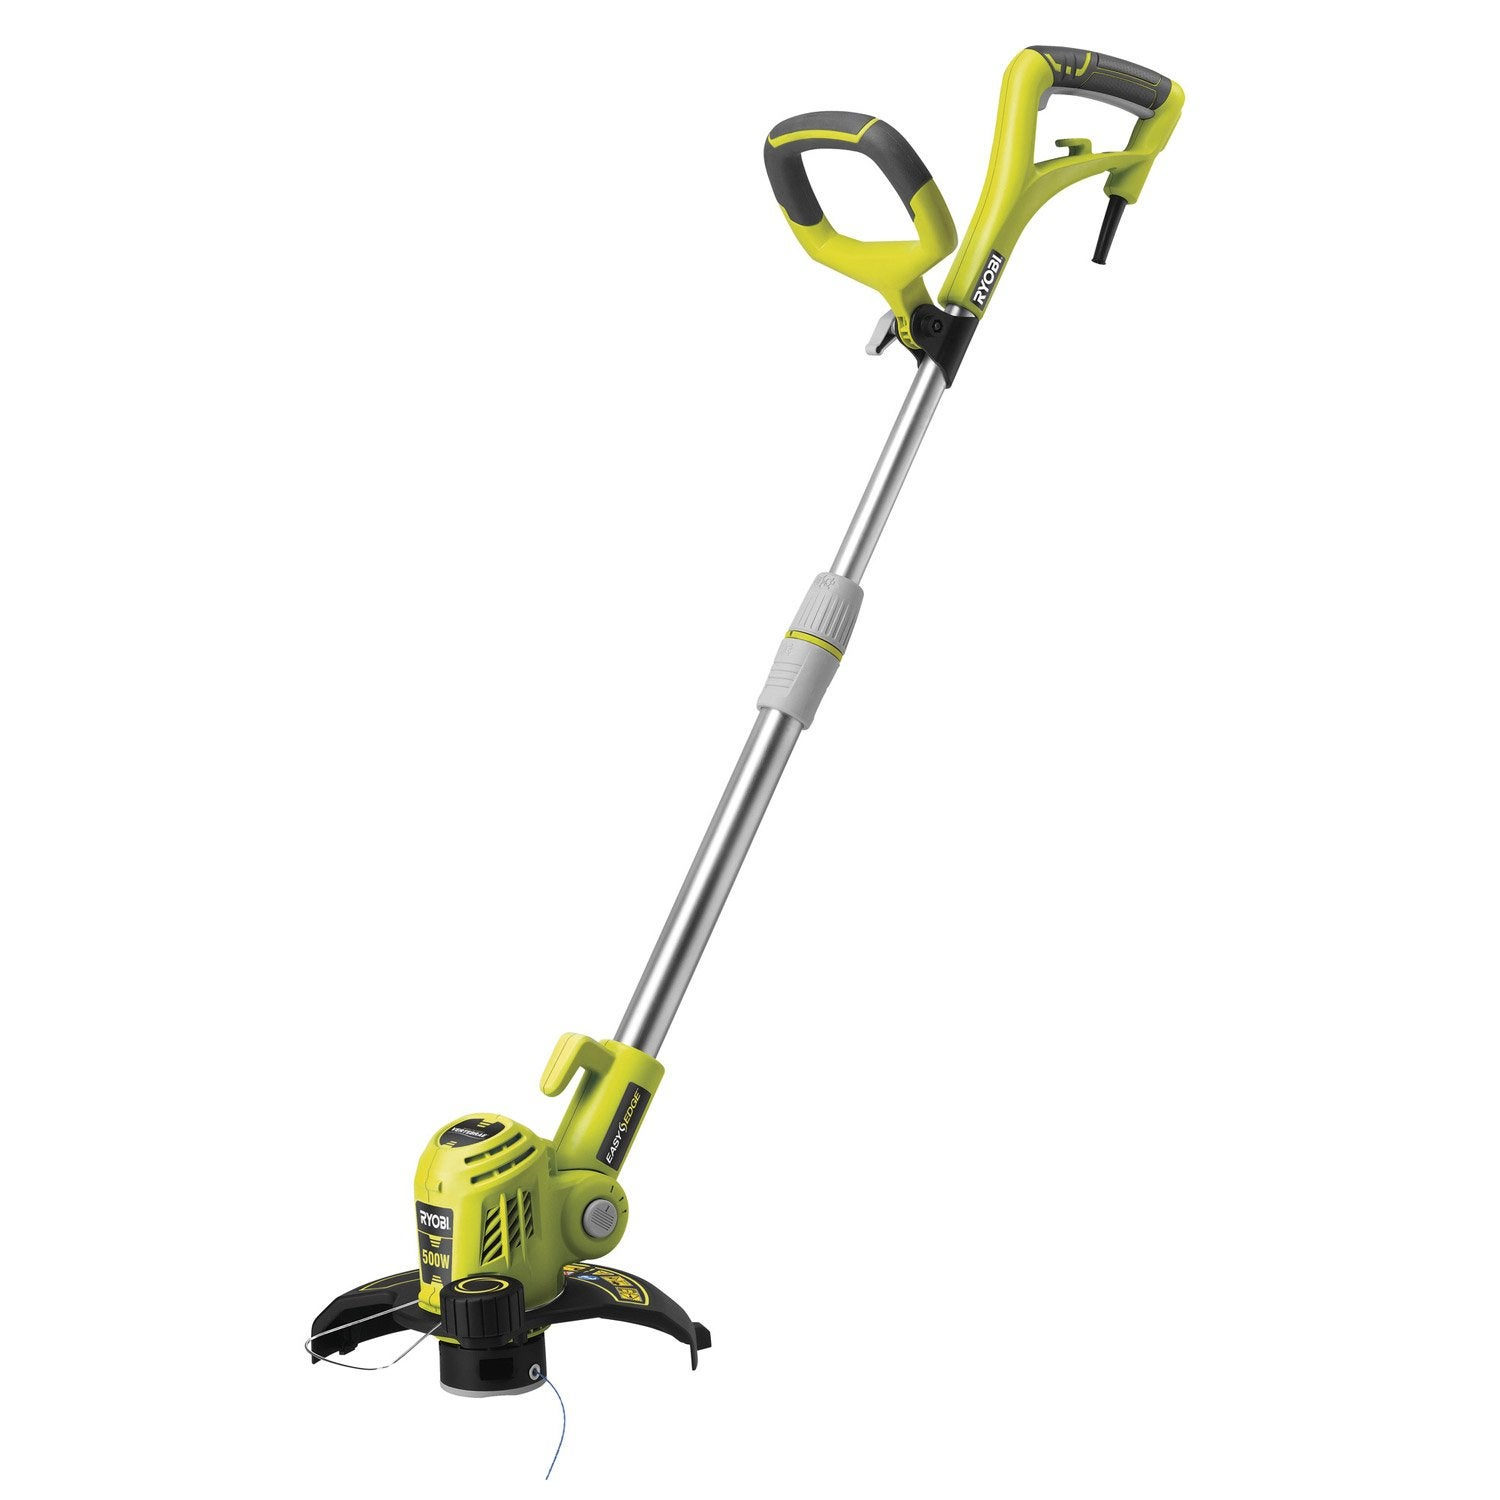 Coupe bordures electrique ryobi rlt5027pk3 500 w leroy - Pieces detachees pour coupe bordure ryobi ...